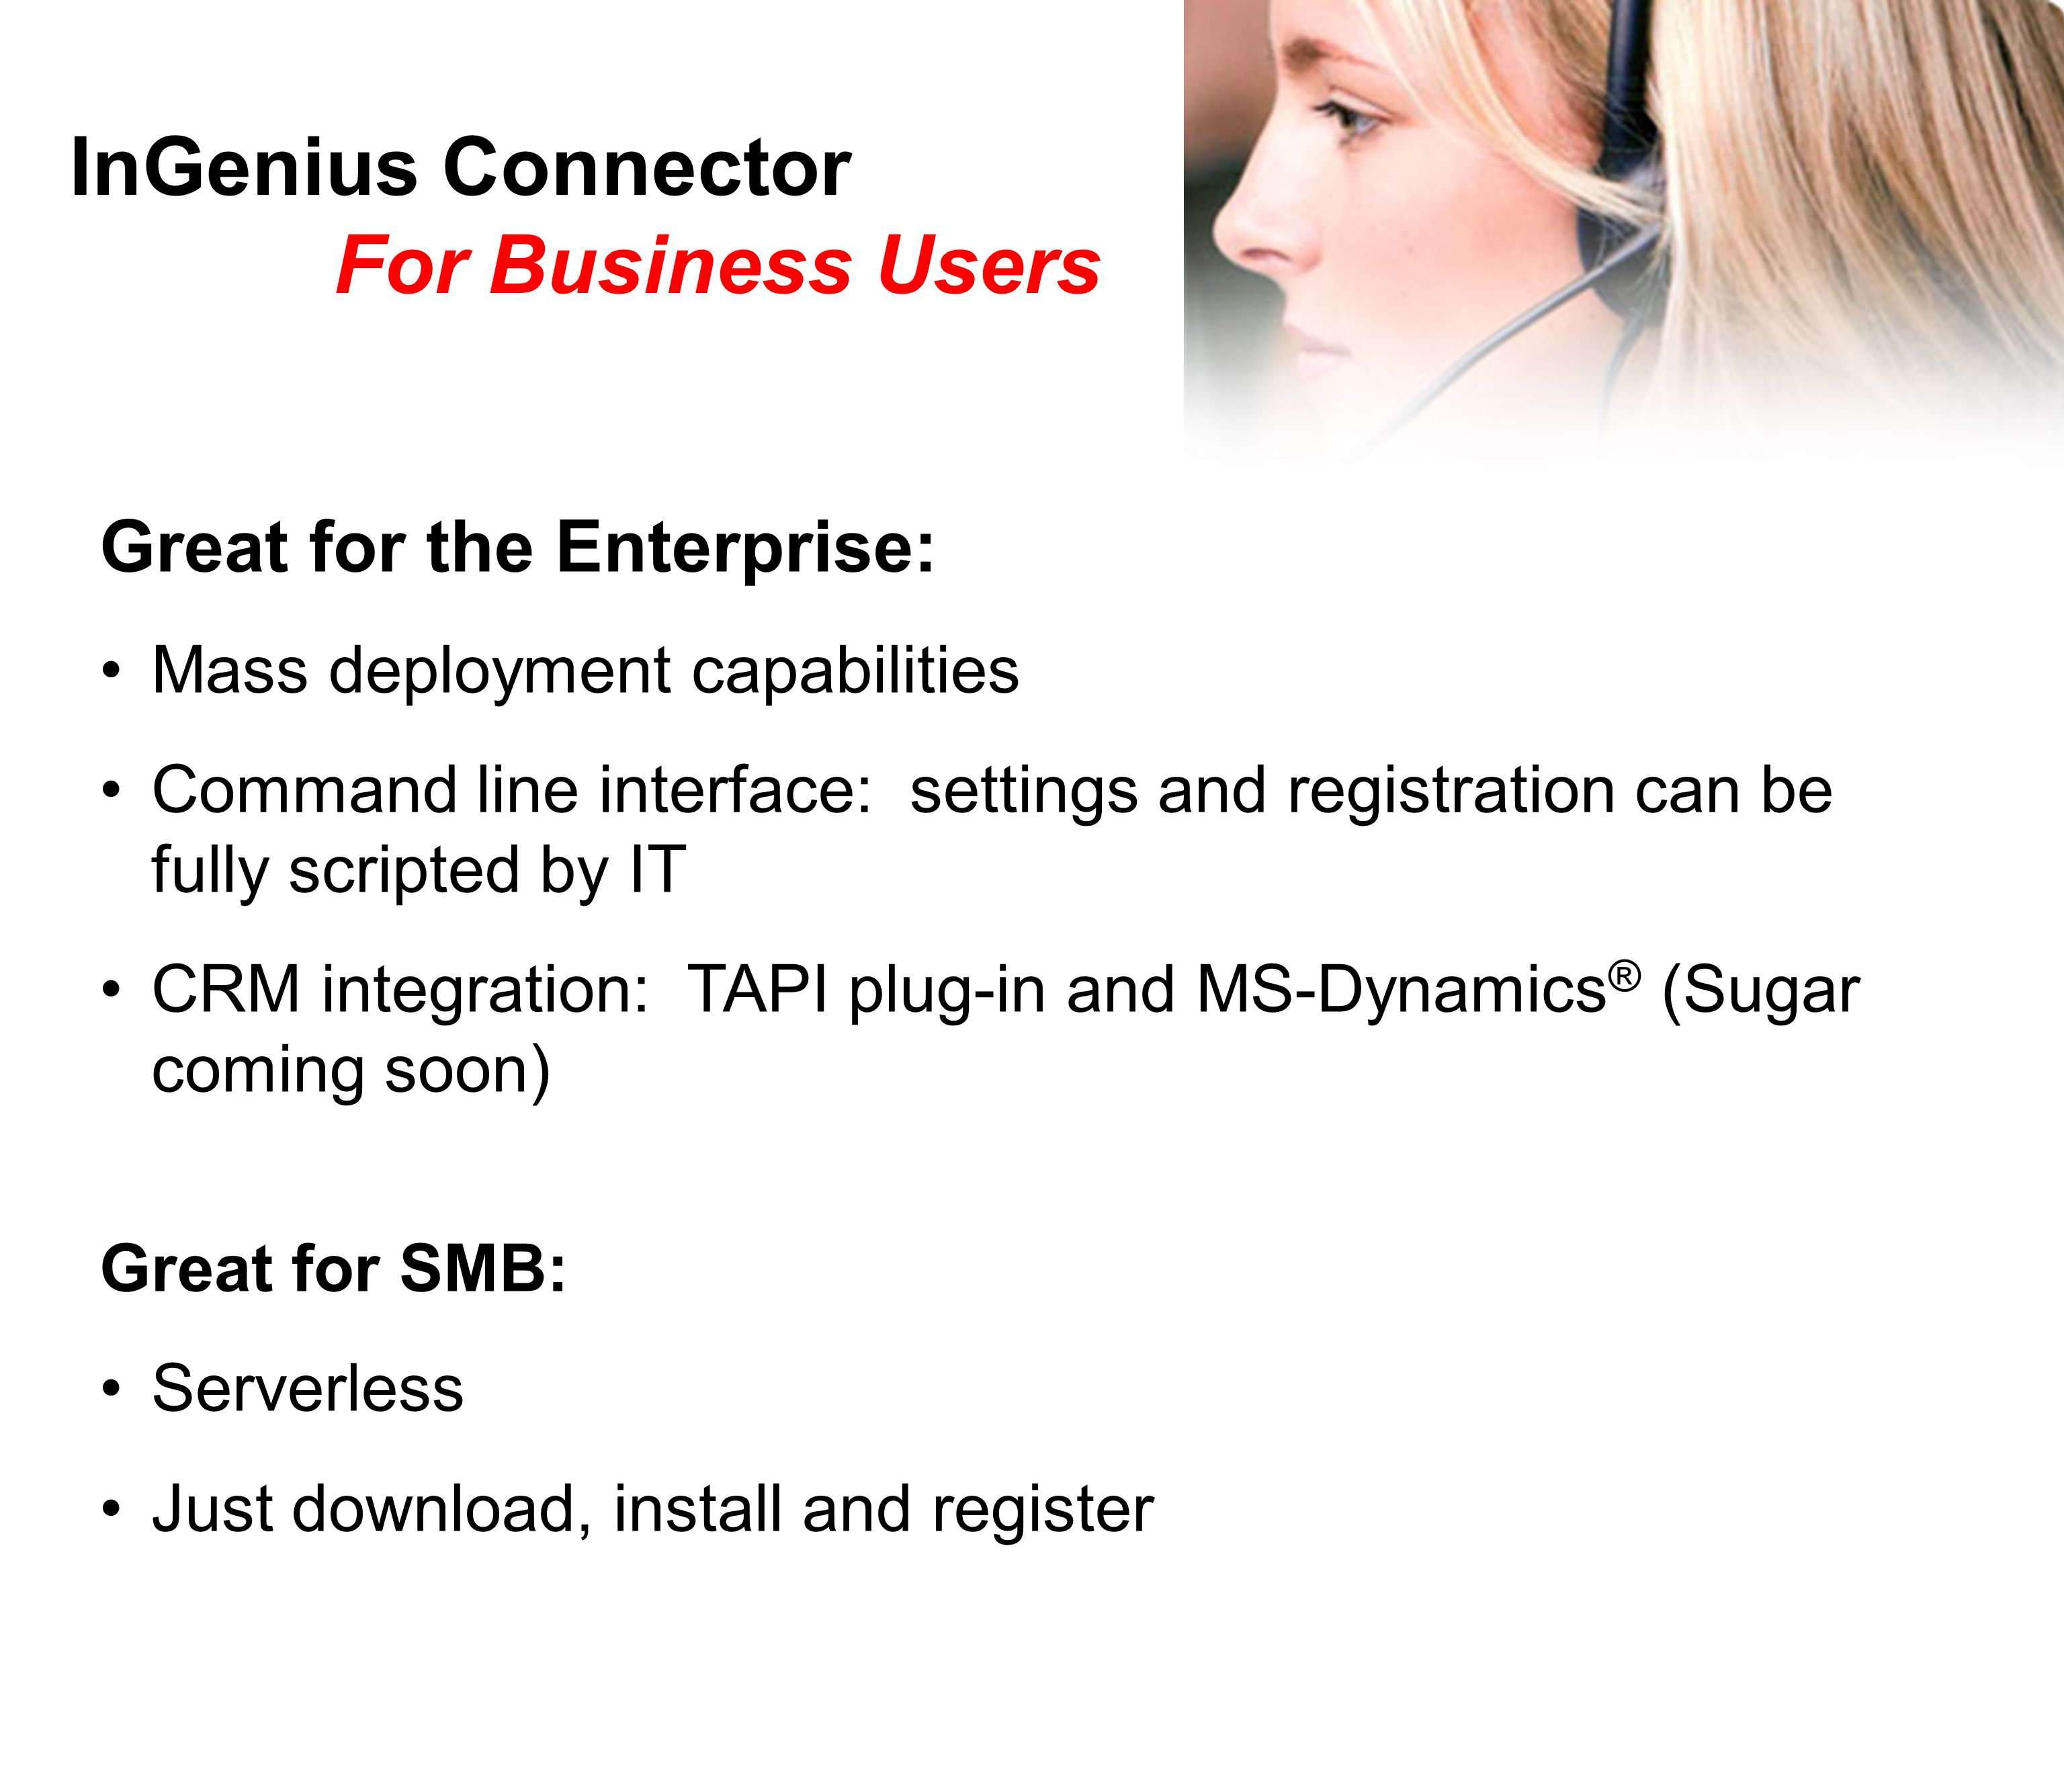 Available for Trial and Purchase at www.InGeniusConnector.com Resellers, we are open for business.